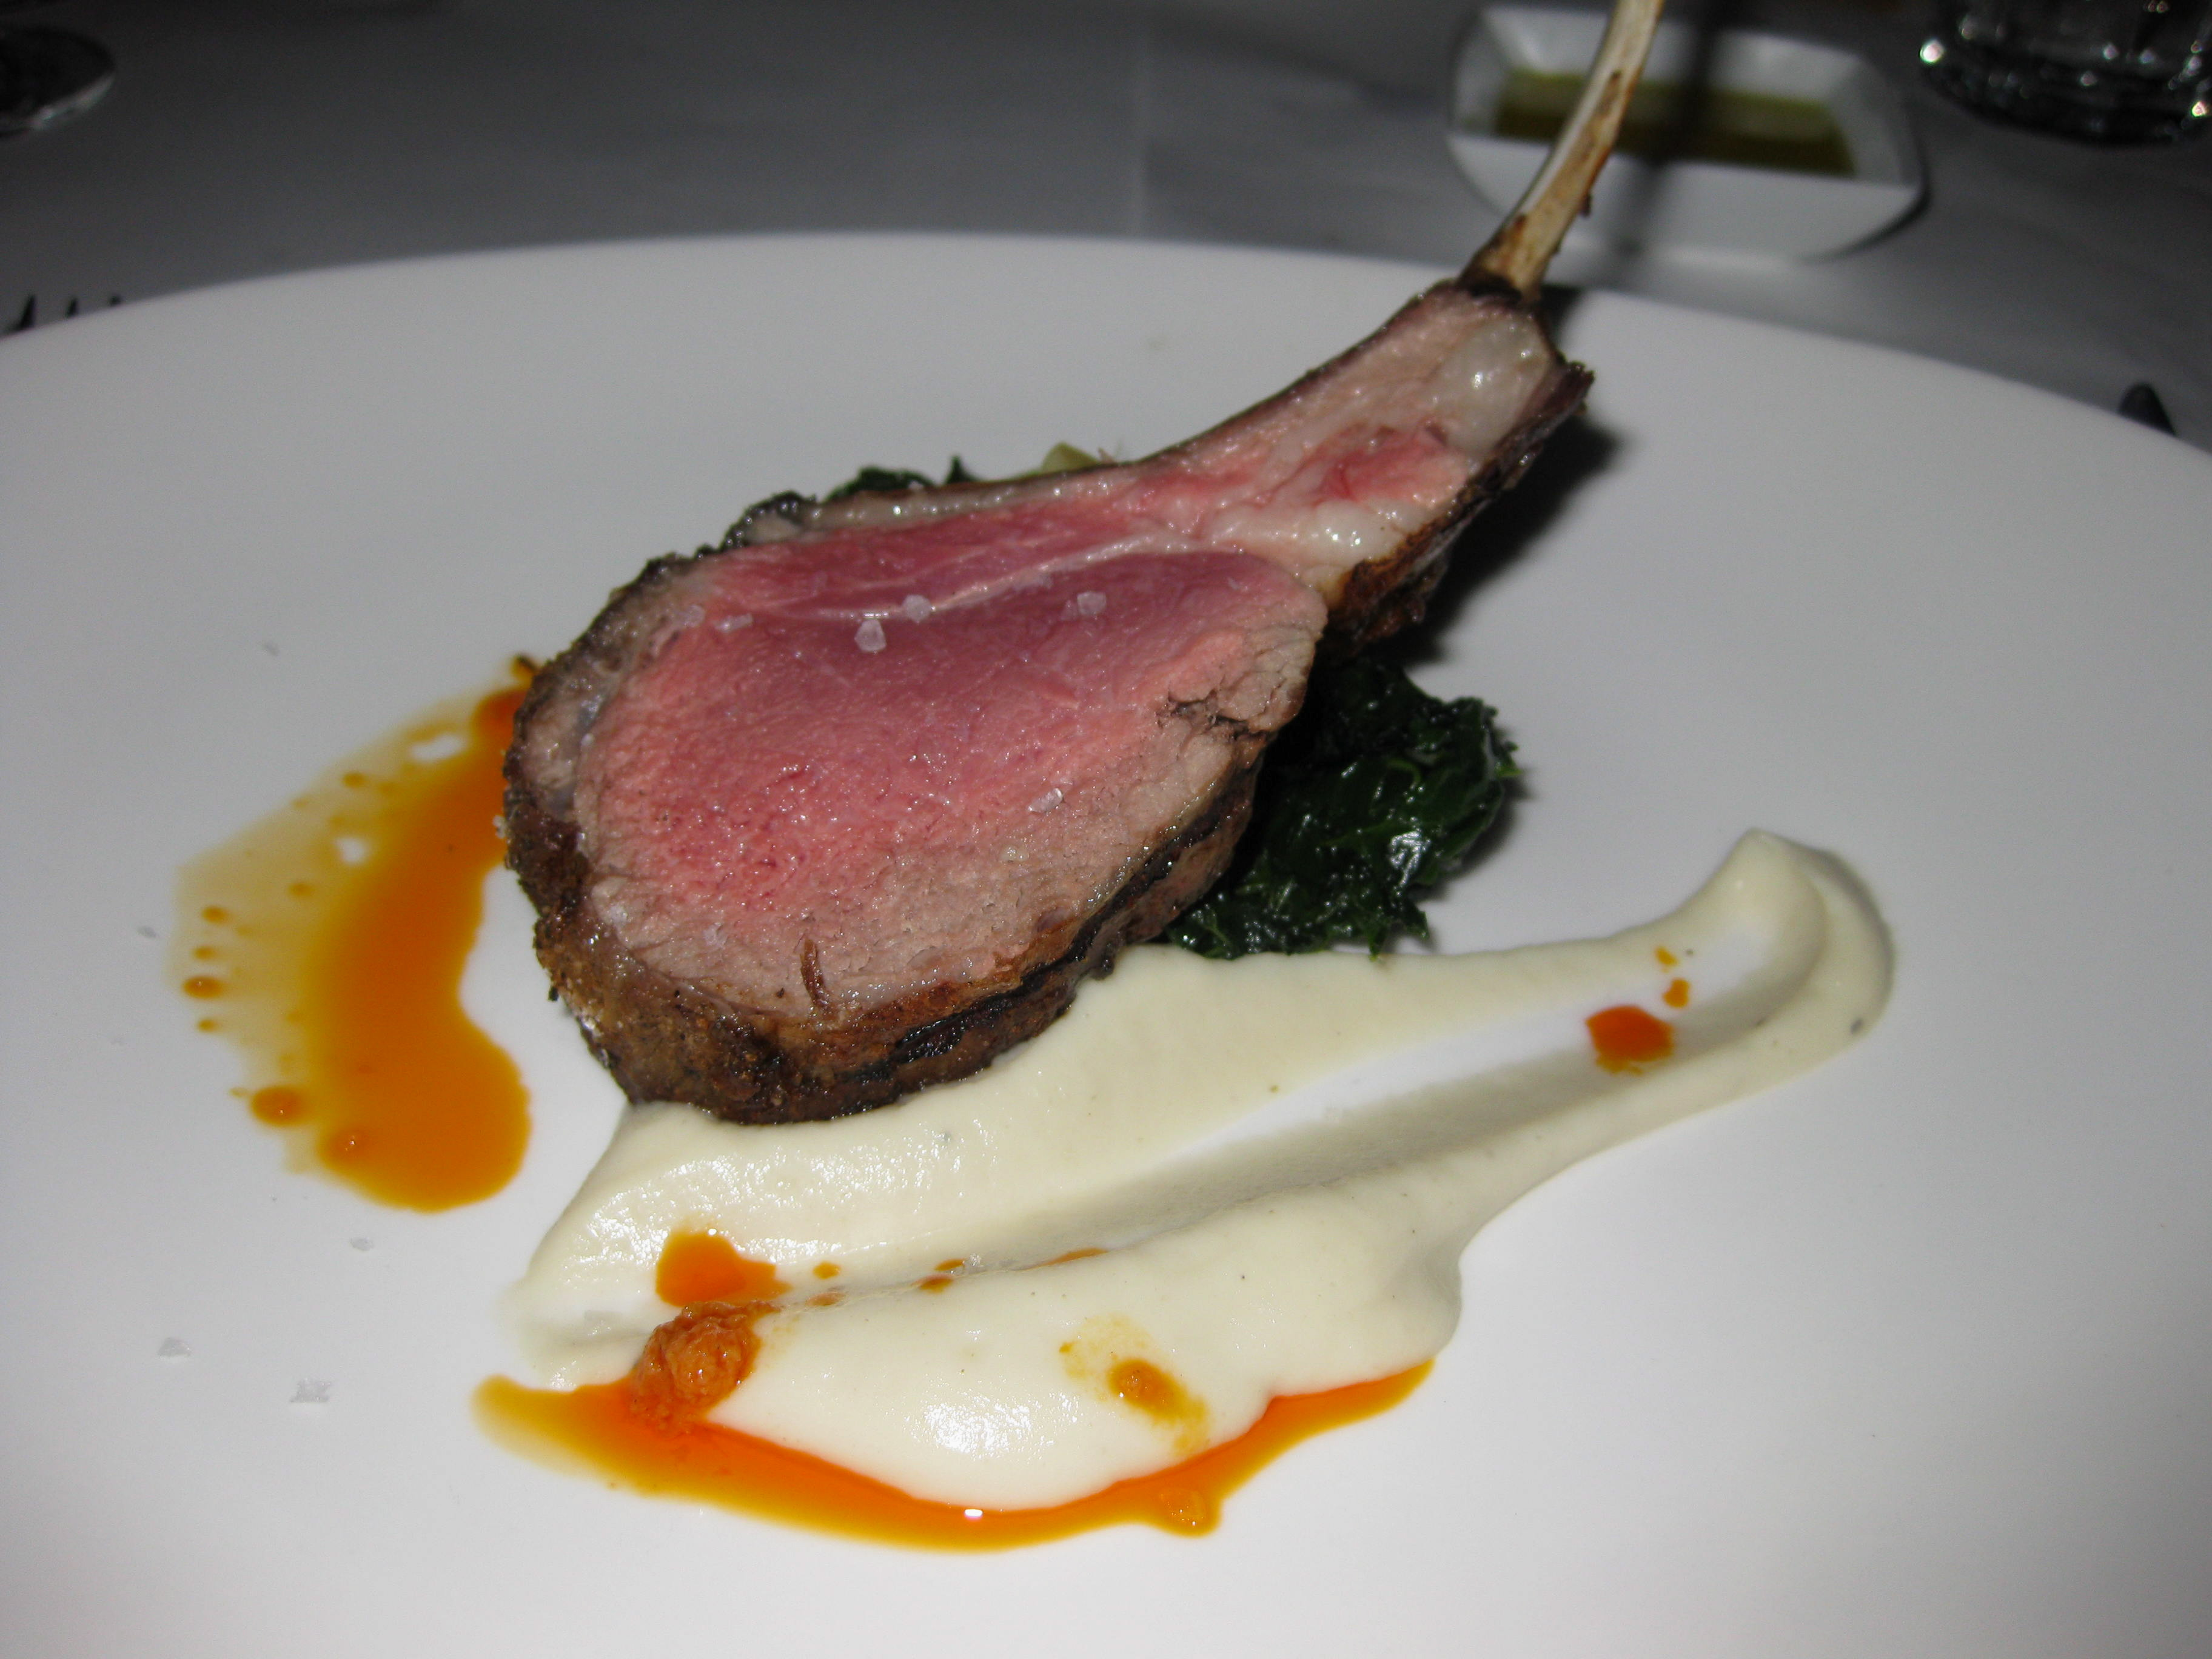 Rack of Lamb: The crispy skin, tender meat and pure flavor of lamb lingers long after this dish is consumed.